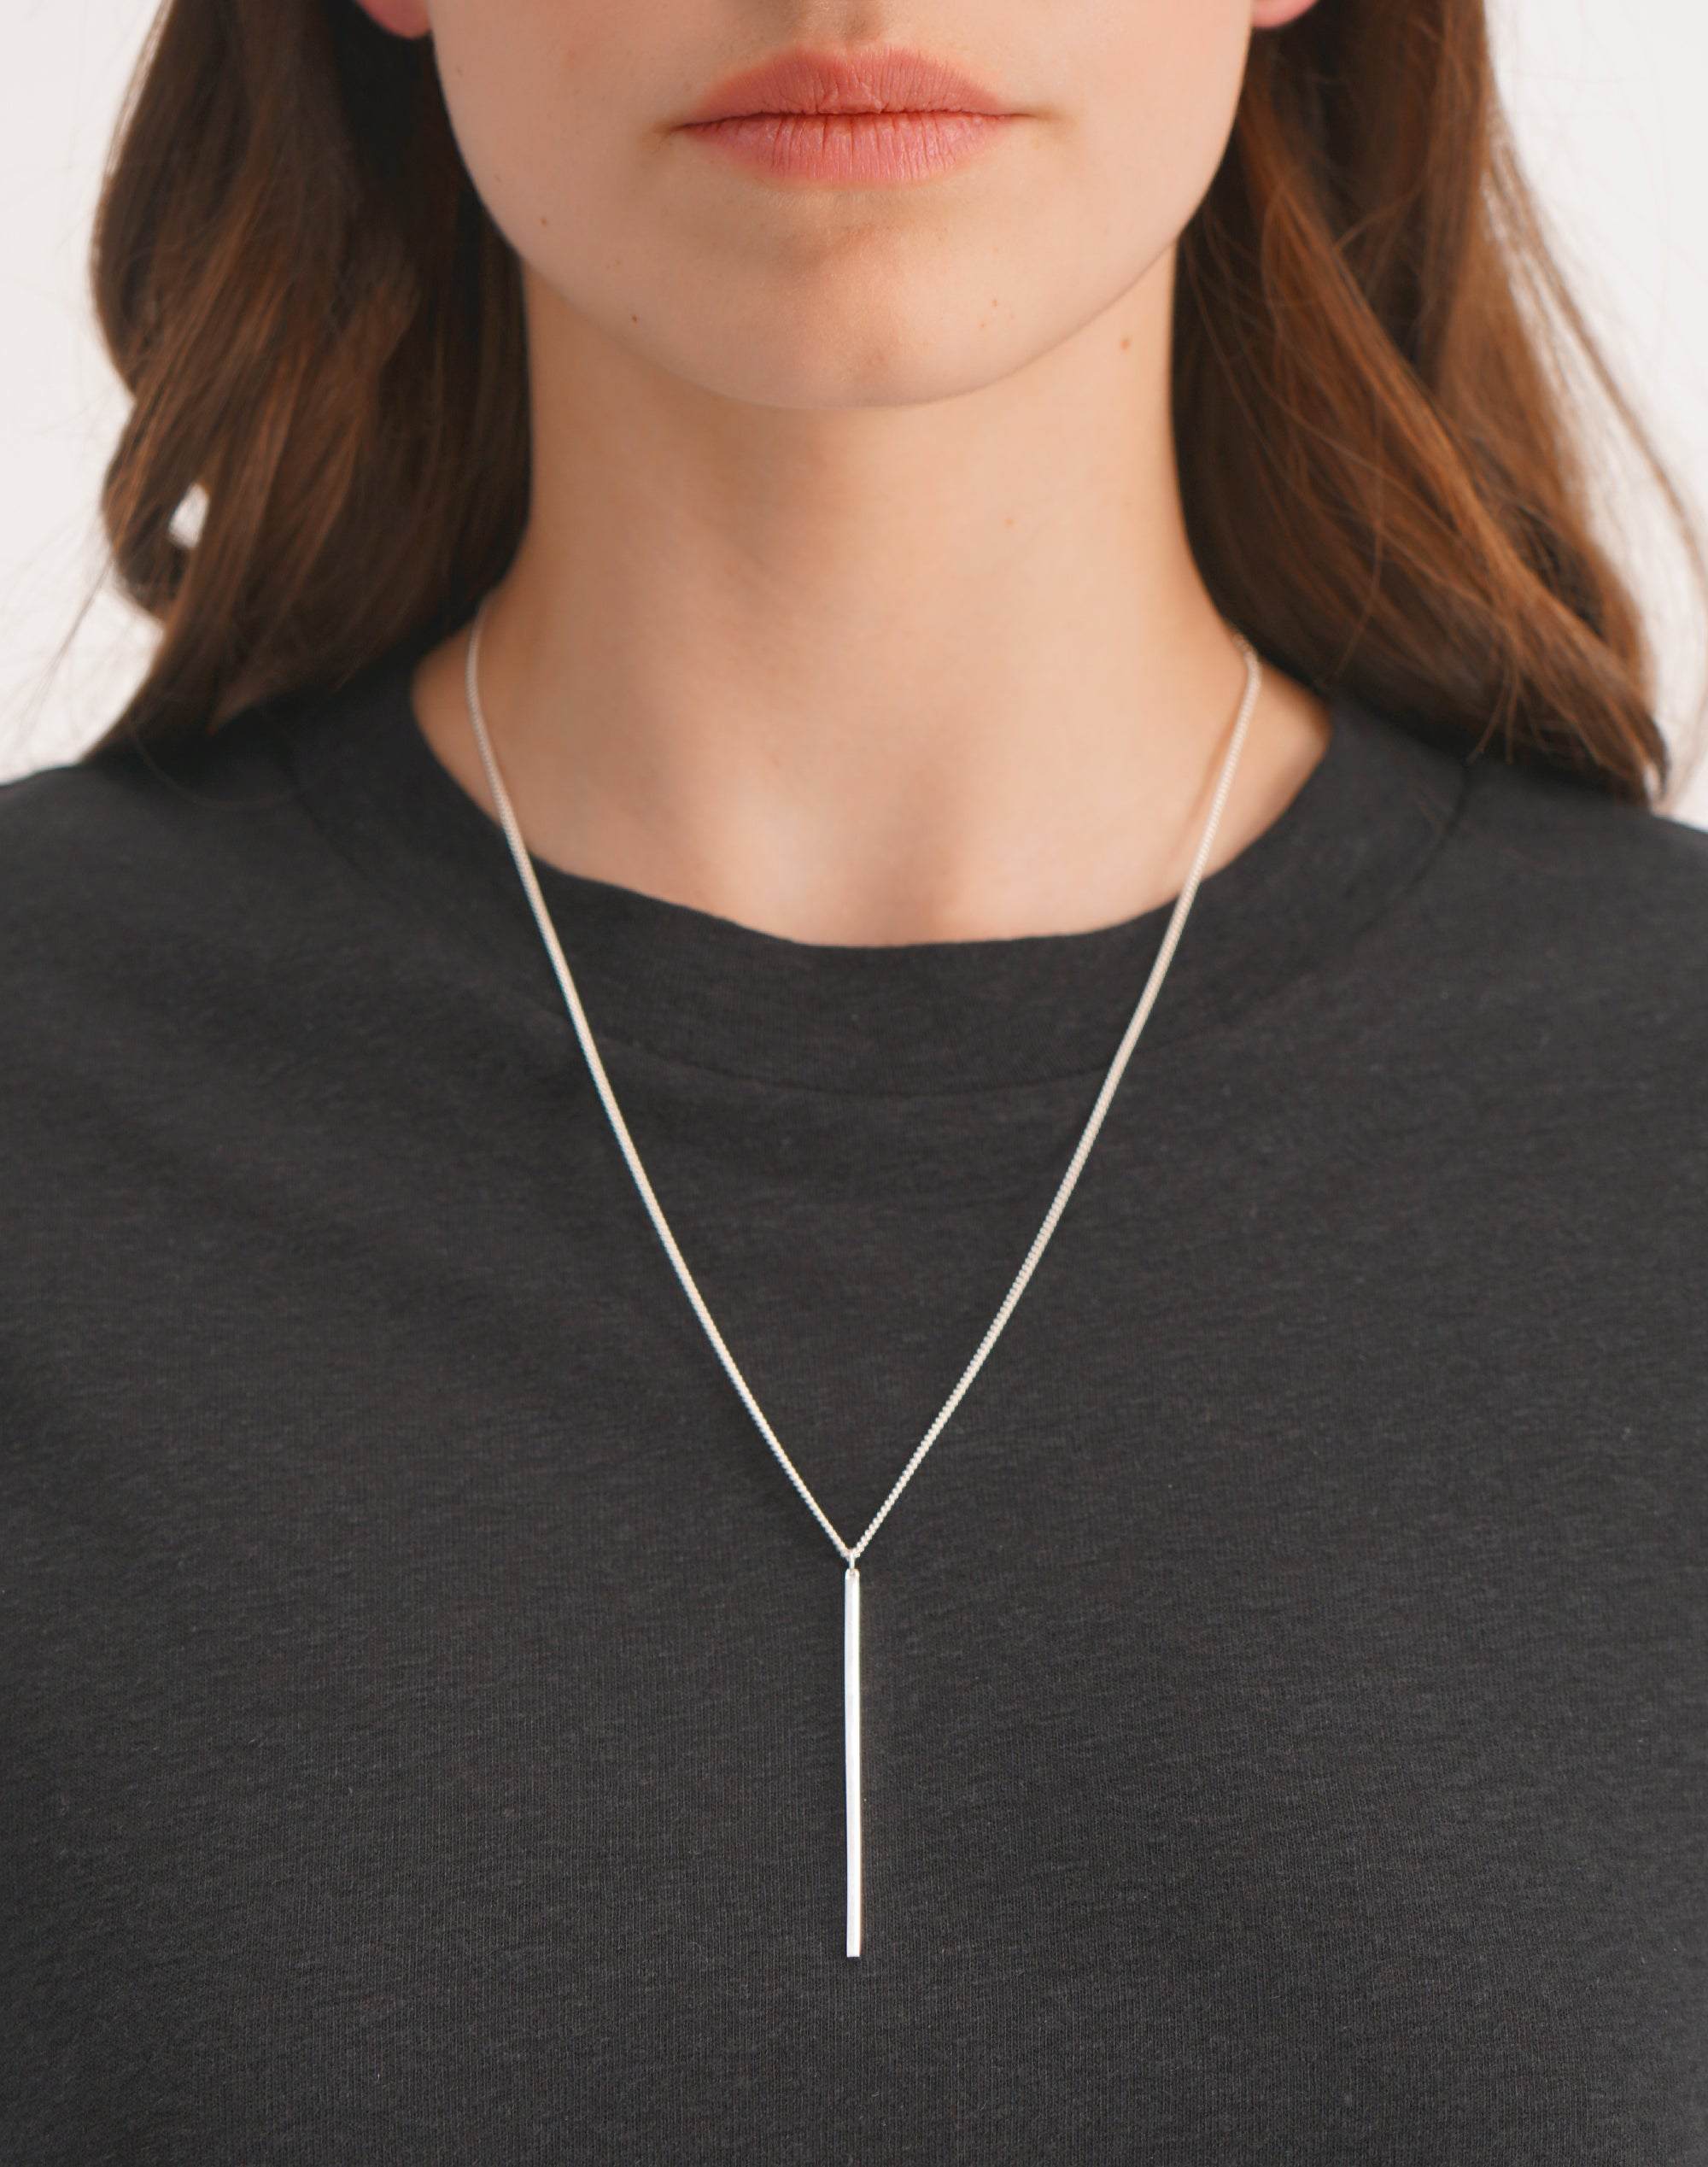 Bridged Necklace